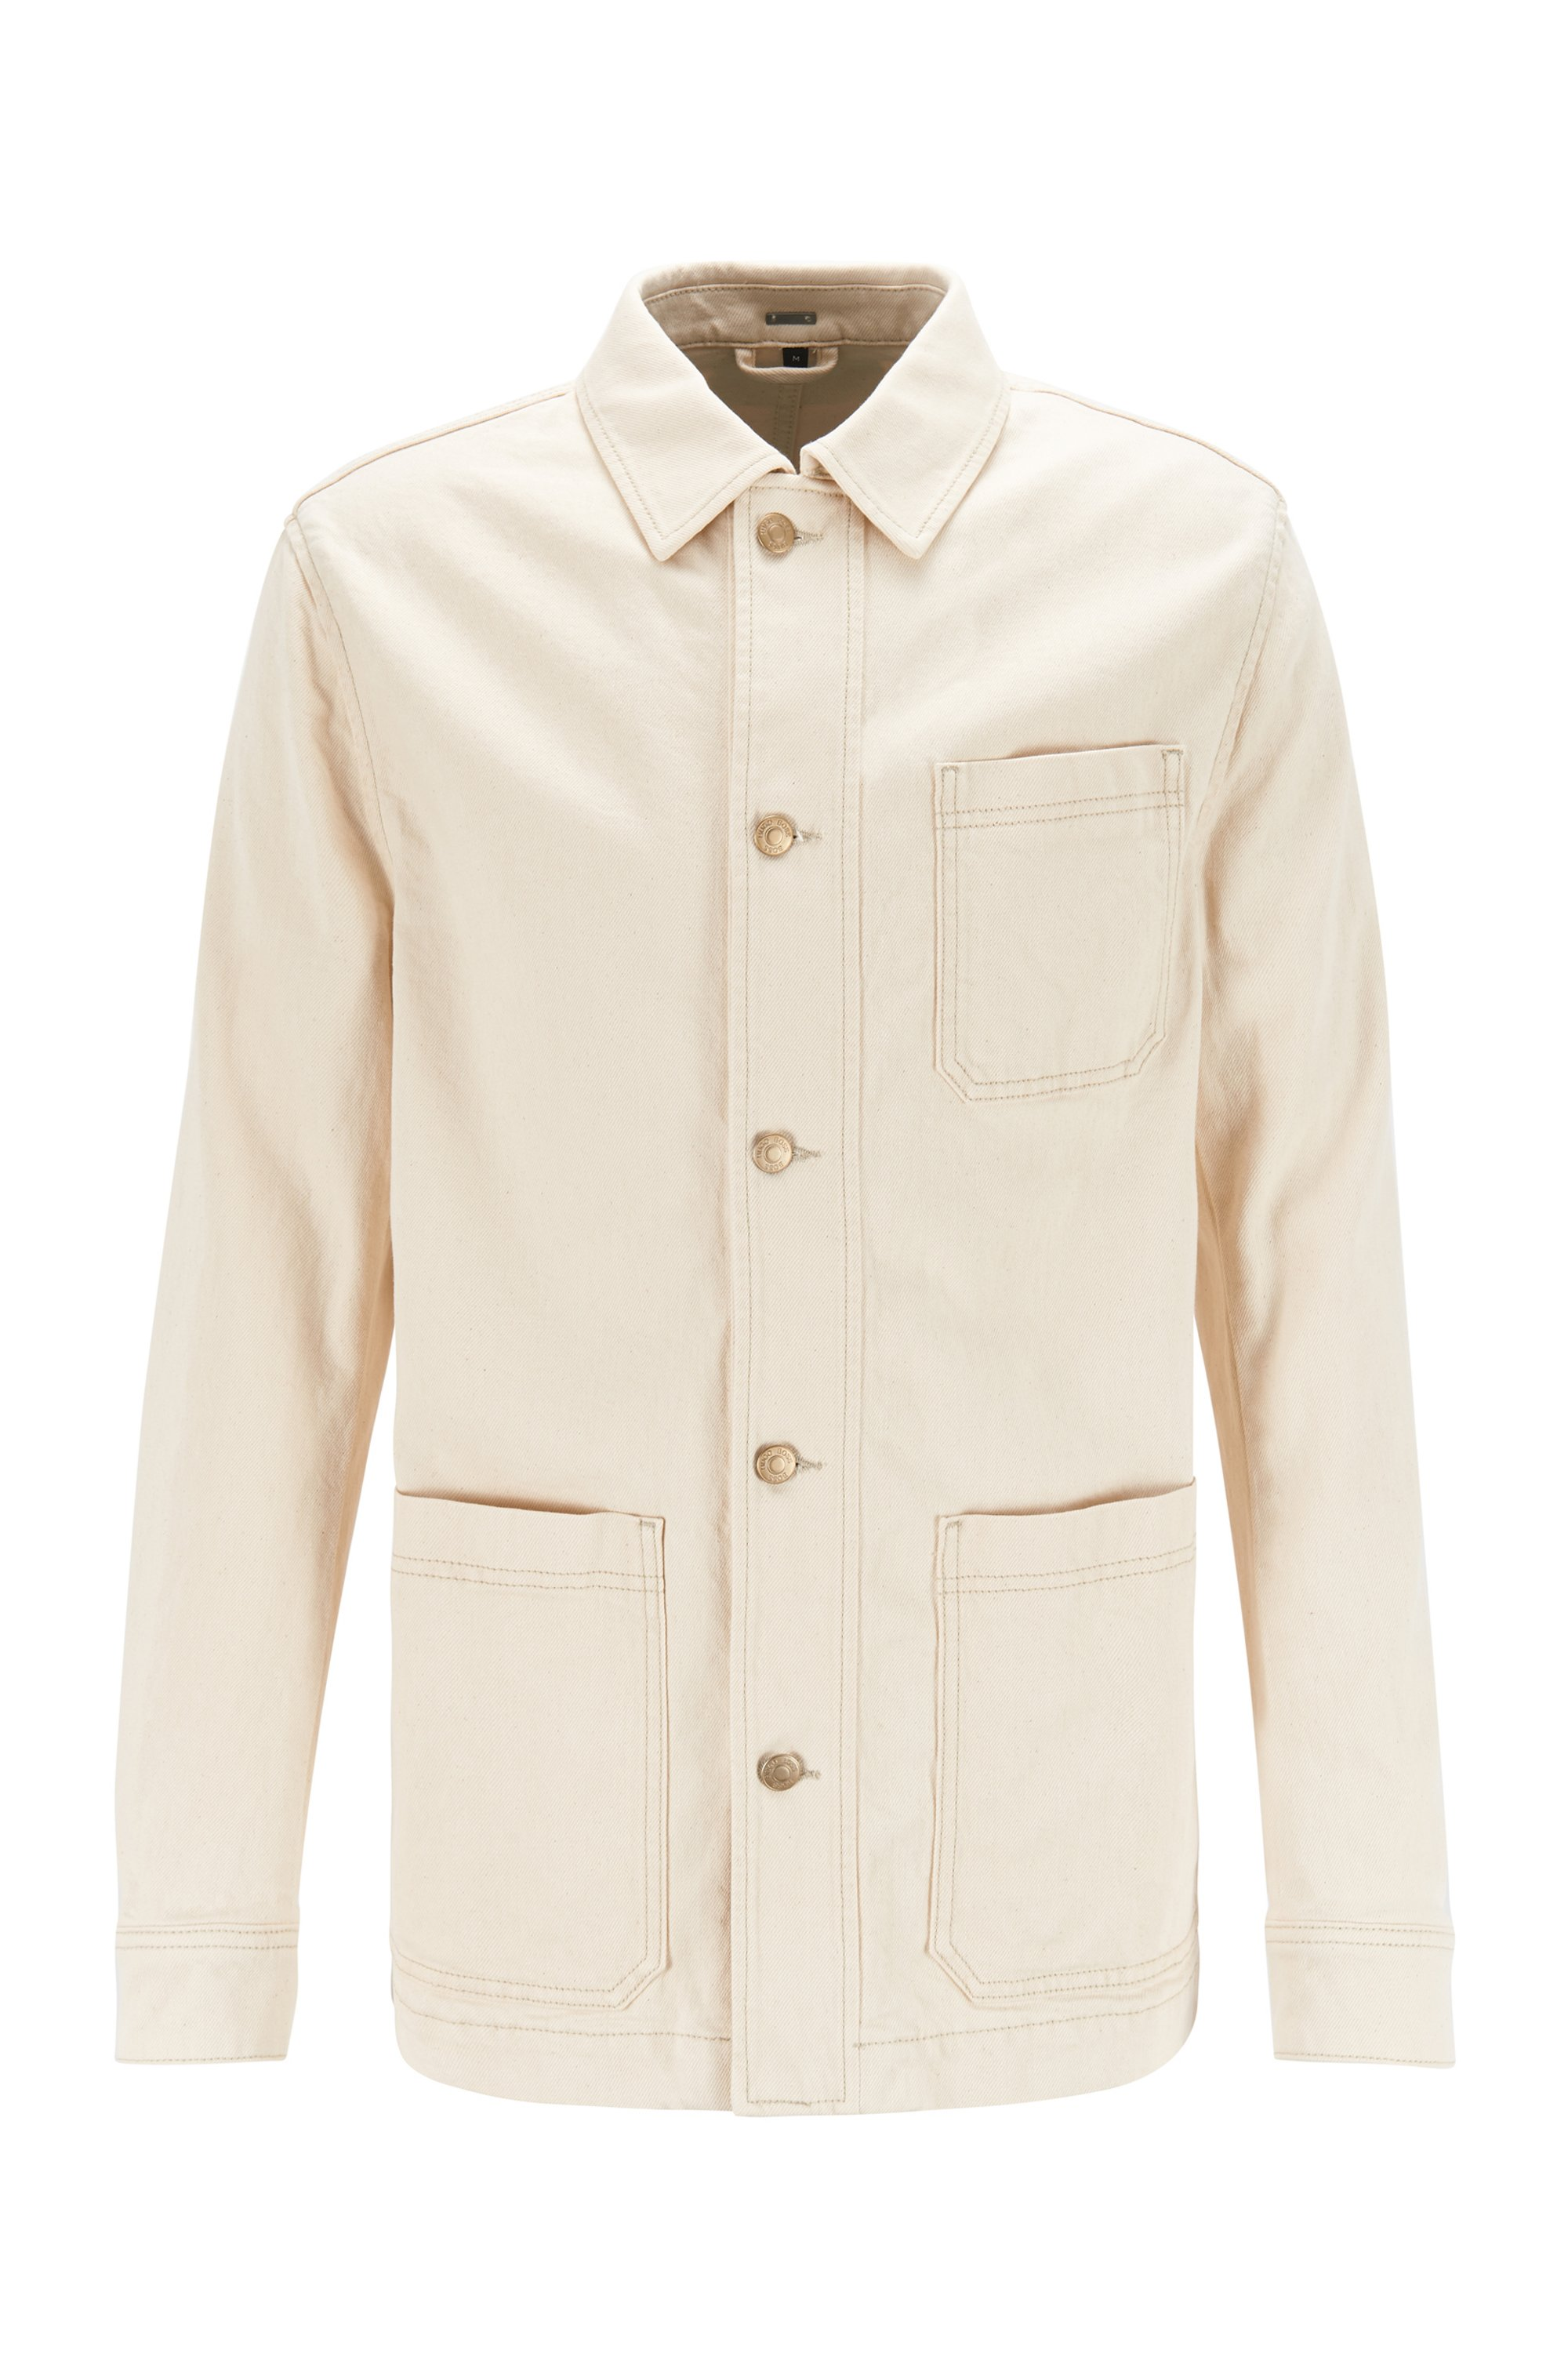 Veste en denim naturel avec finitions effet or blanc, Blanc